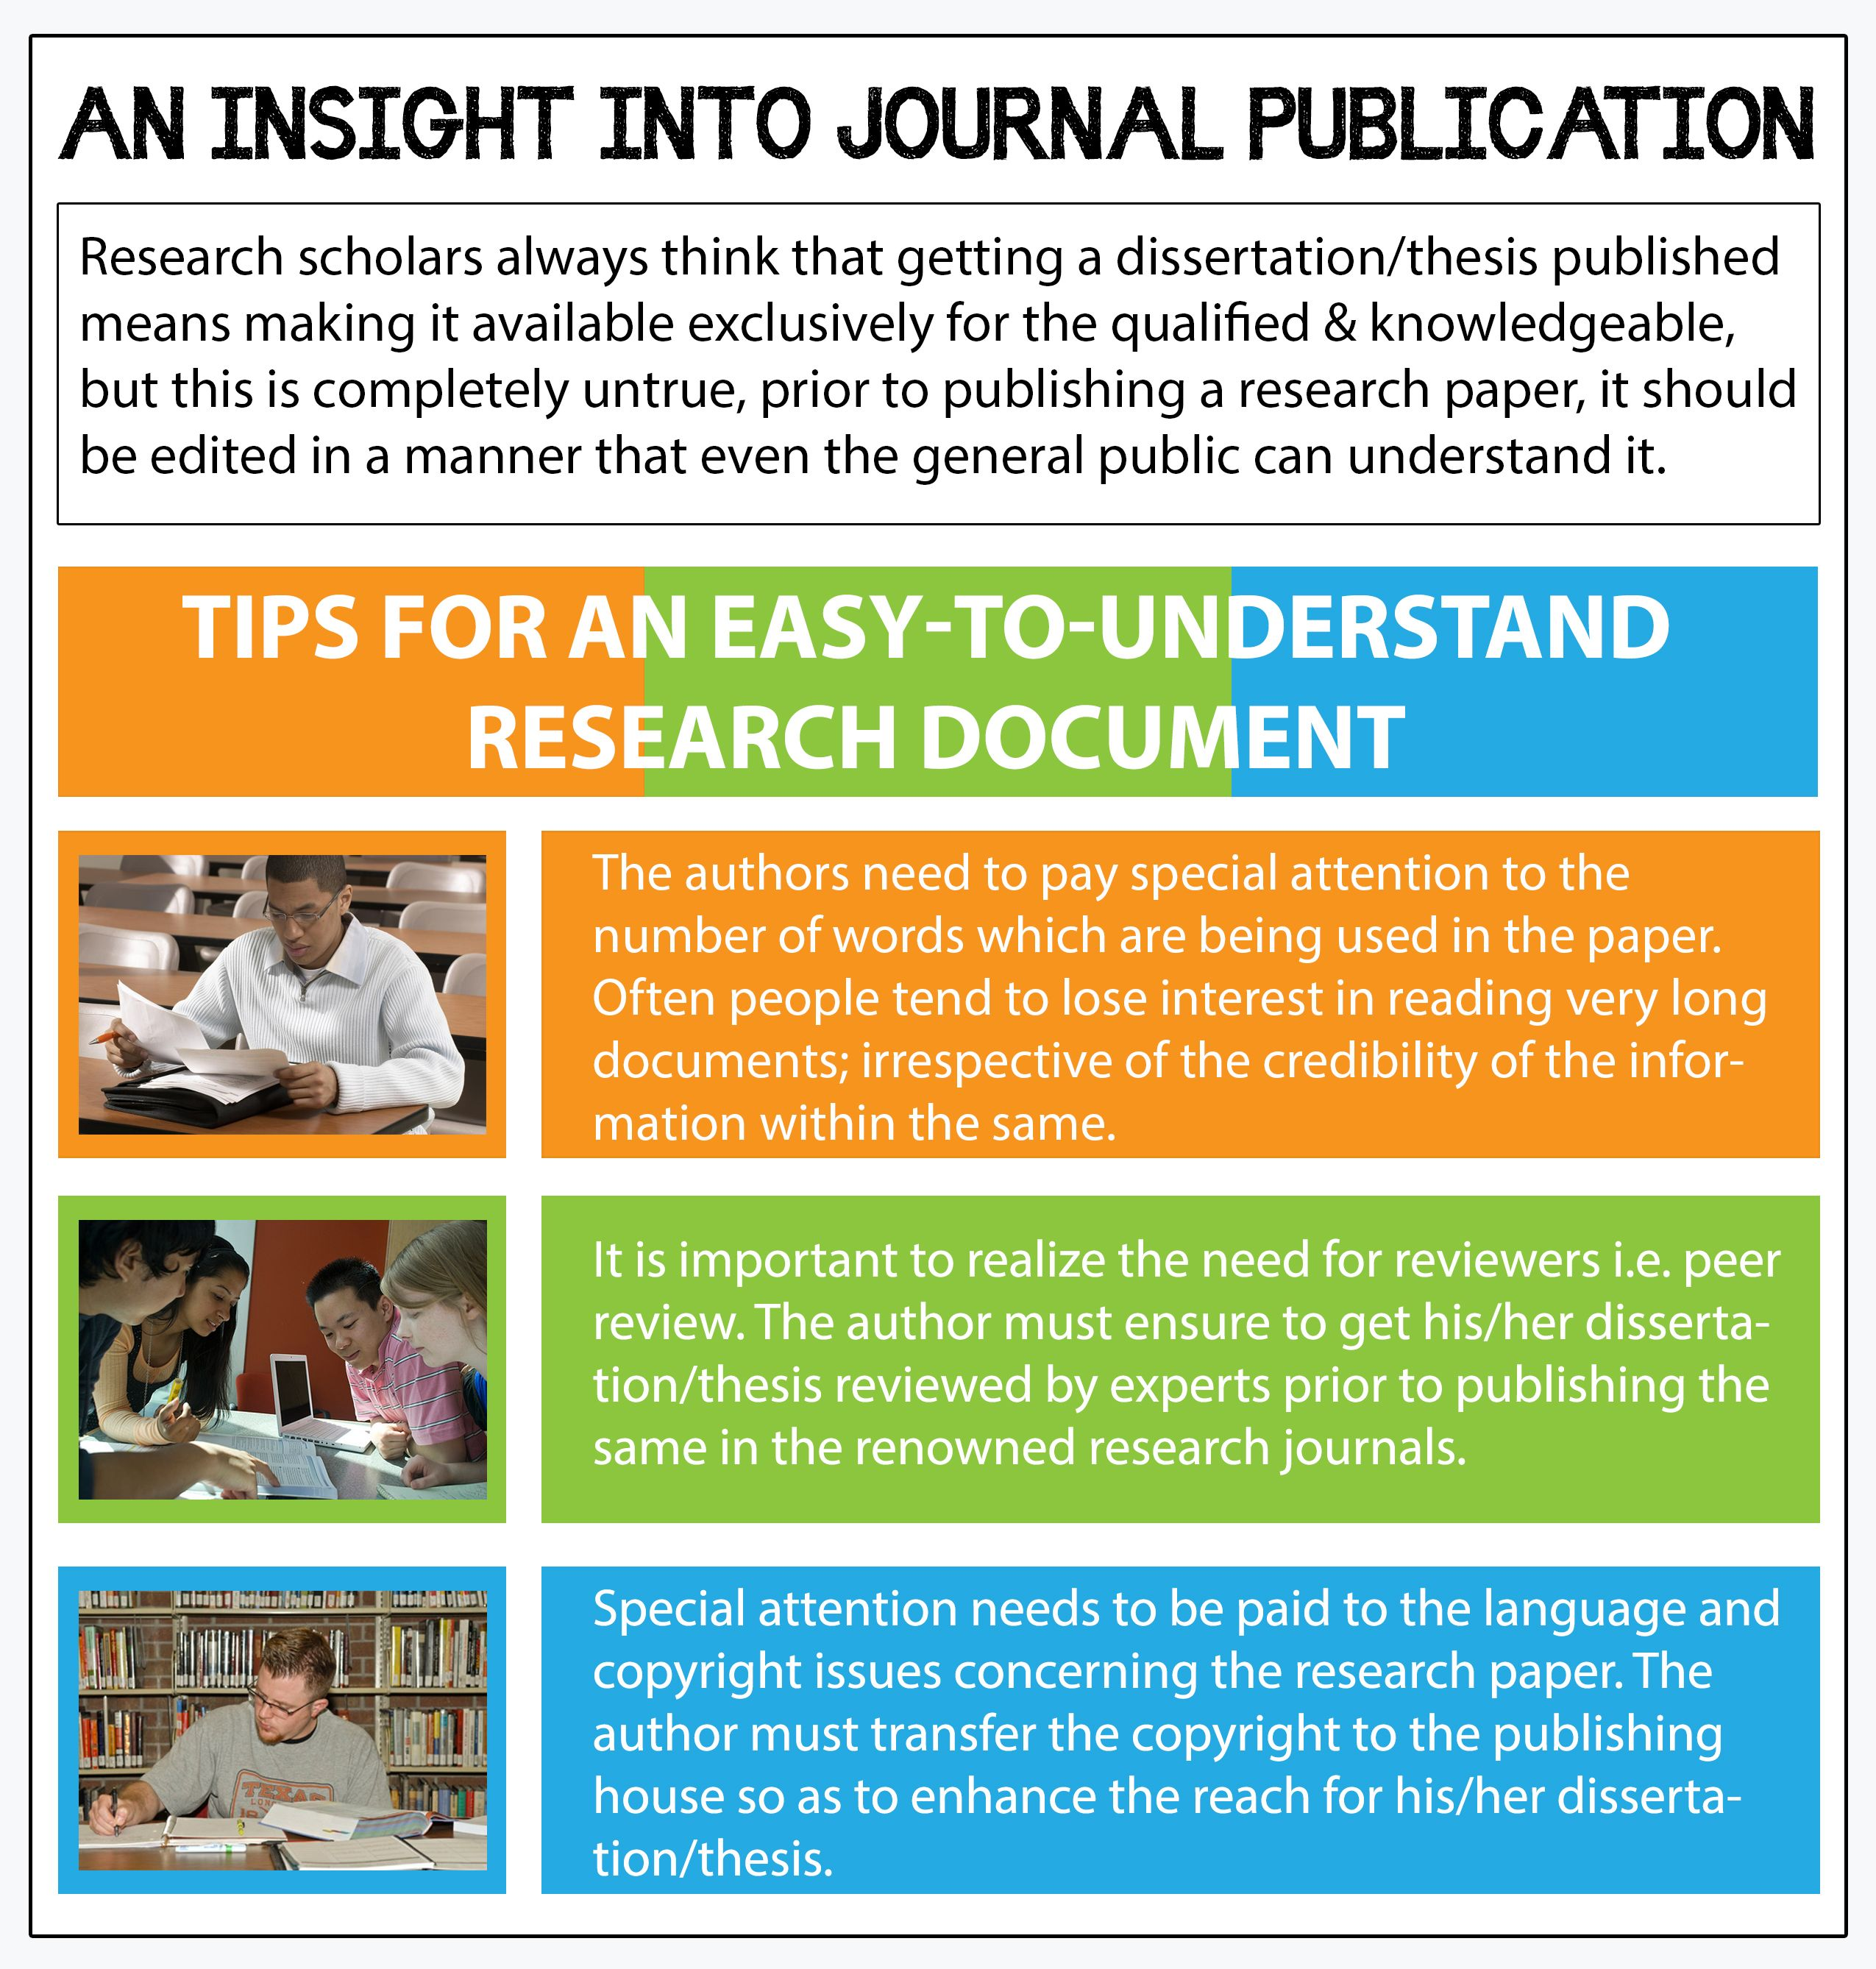 The length of a research paper, as well as the language that it is written in and the fact that it has been peer reviewed play a crucial role in making it fit for journal publication. These factors must be kept in mind.